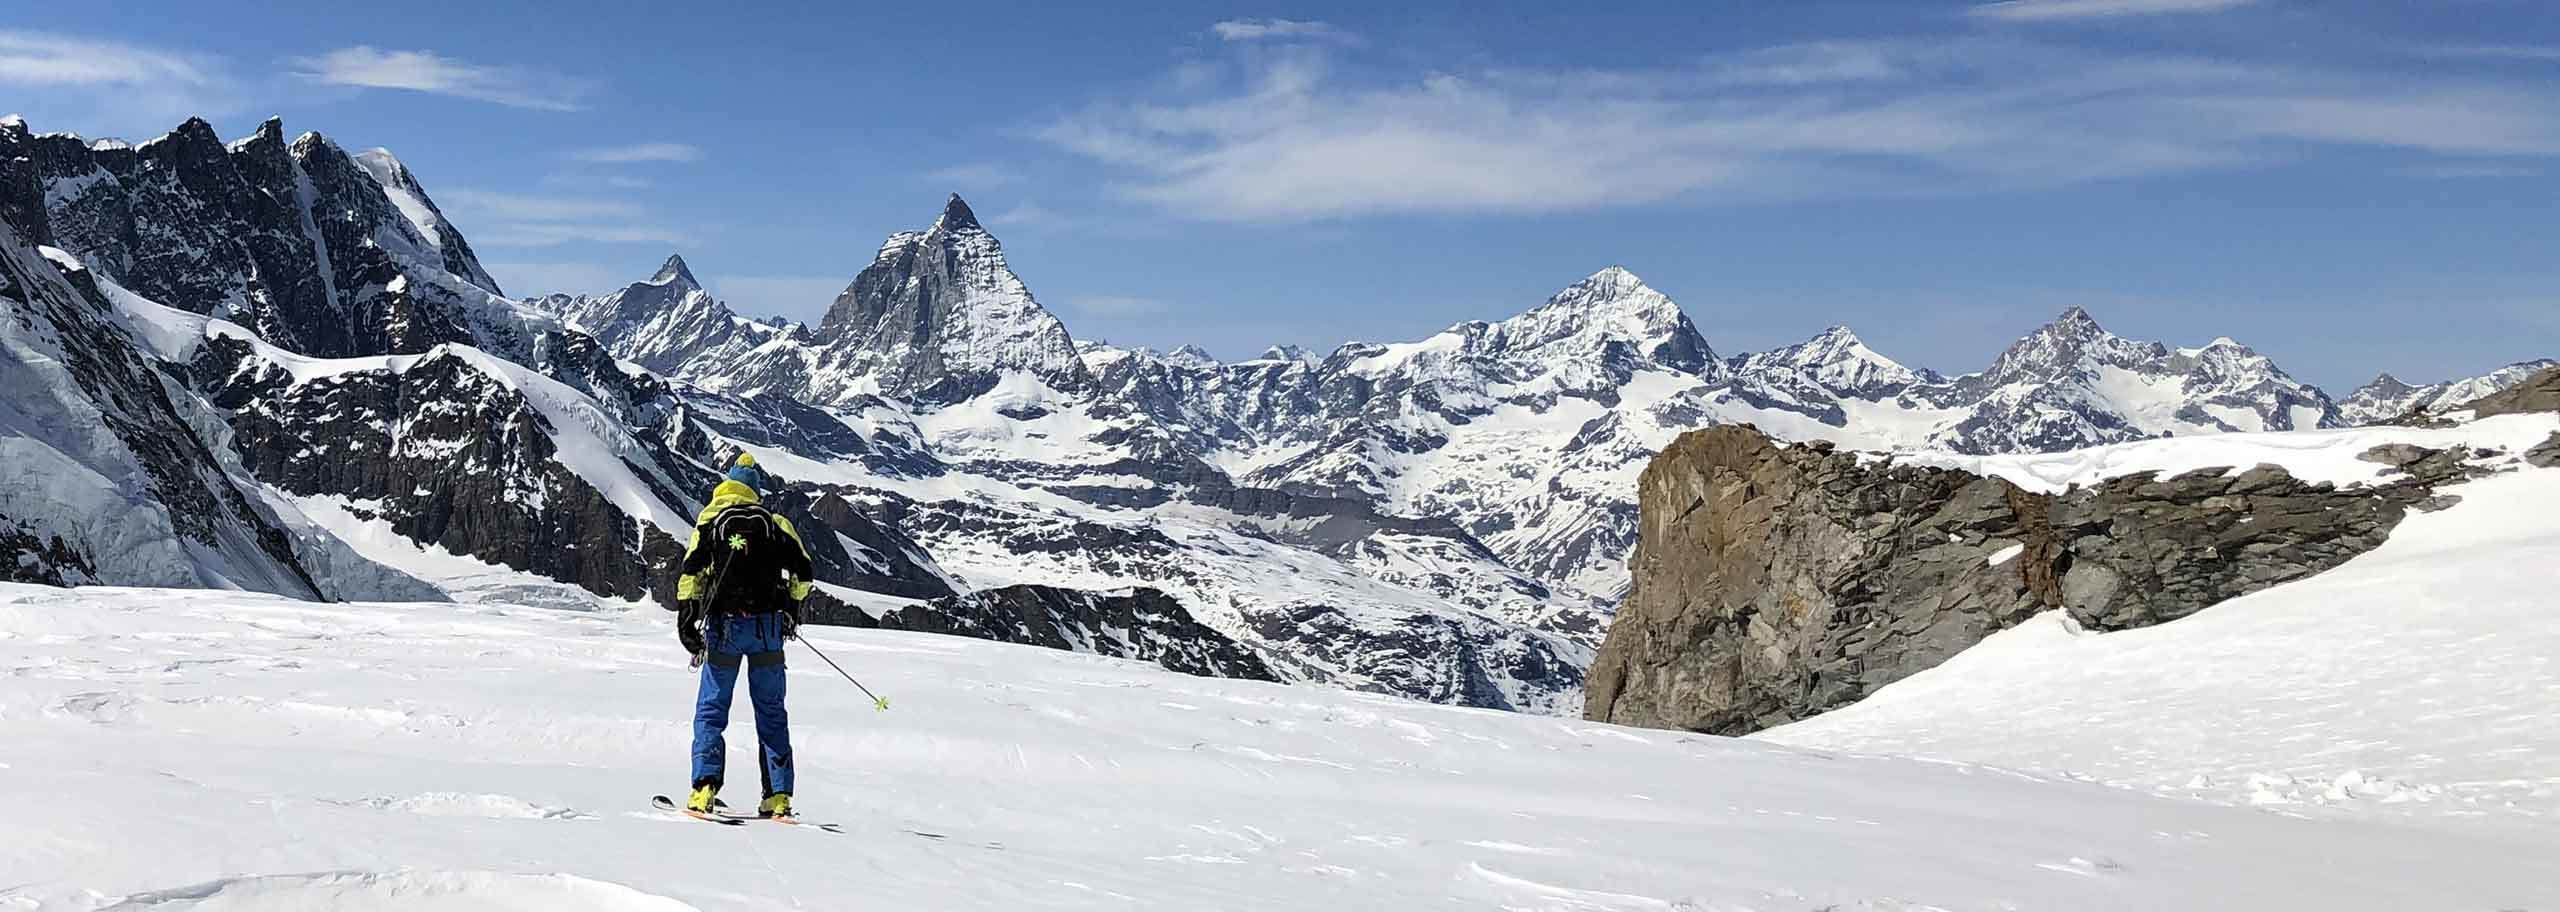 Ski Mountaineering with Mountain Guide in Cervinia, Matterhorn